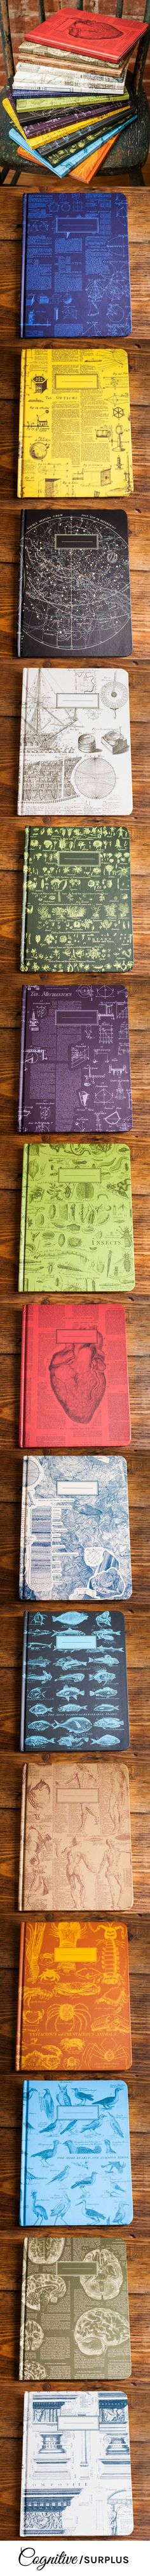 They make perfect gifts for all your science and math nerd friends. Each notebook tells its own story sporting vintage imagery and text from the first encyclopedia. Combination of two loves, vintagey awesomeness and a beautiful notebook. Journal Inspiration, Scrapbook, Office Deco, Midori, Art Postal, Beautiful Notebooks, Cool Notebooks, Ideias Diy, Journal Notebook